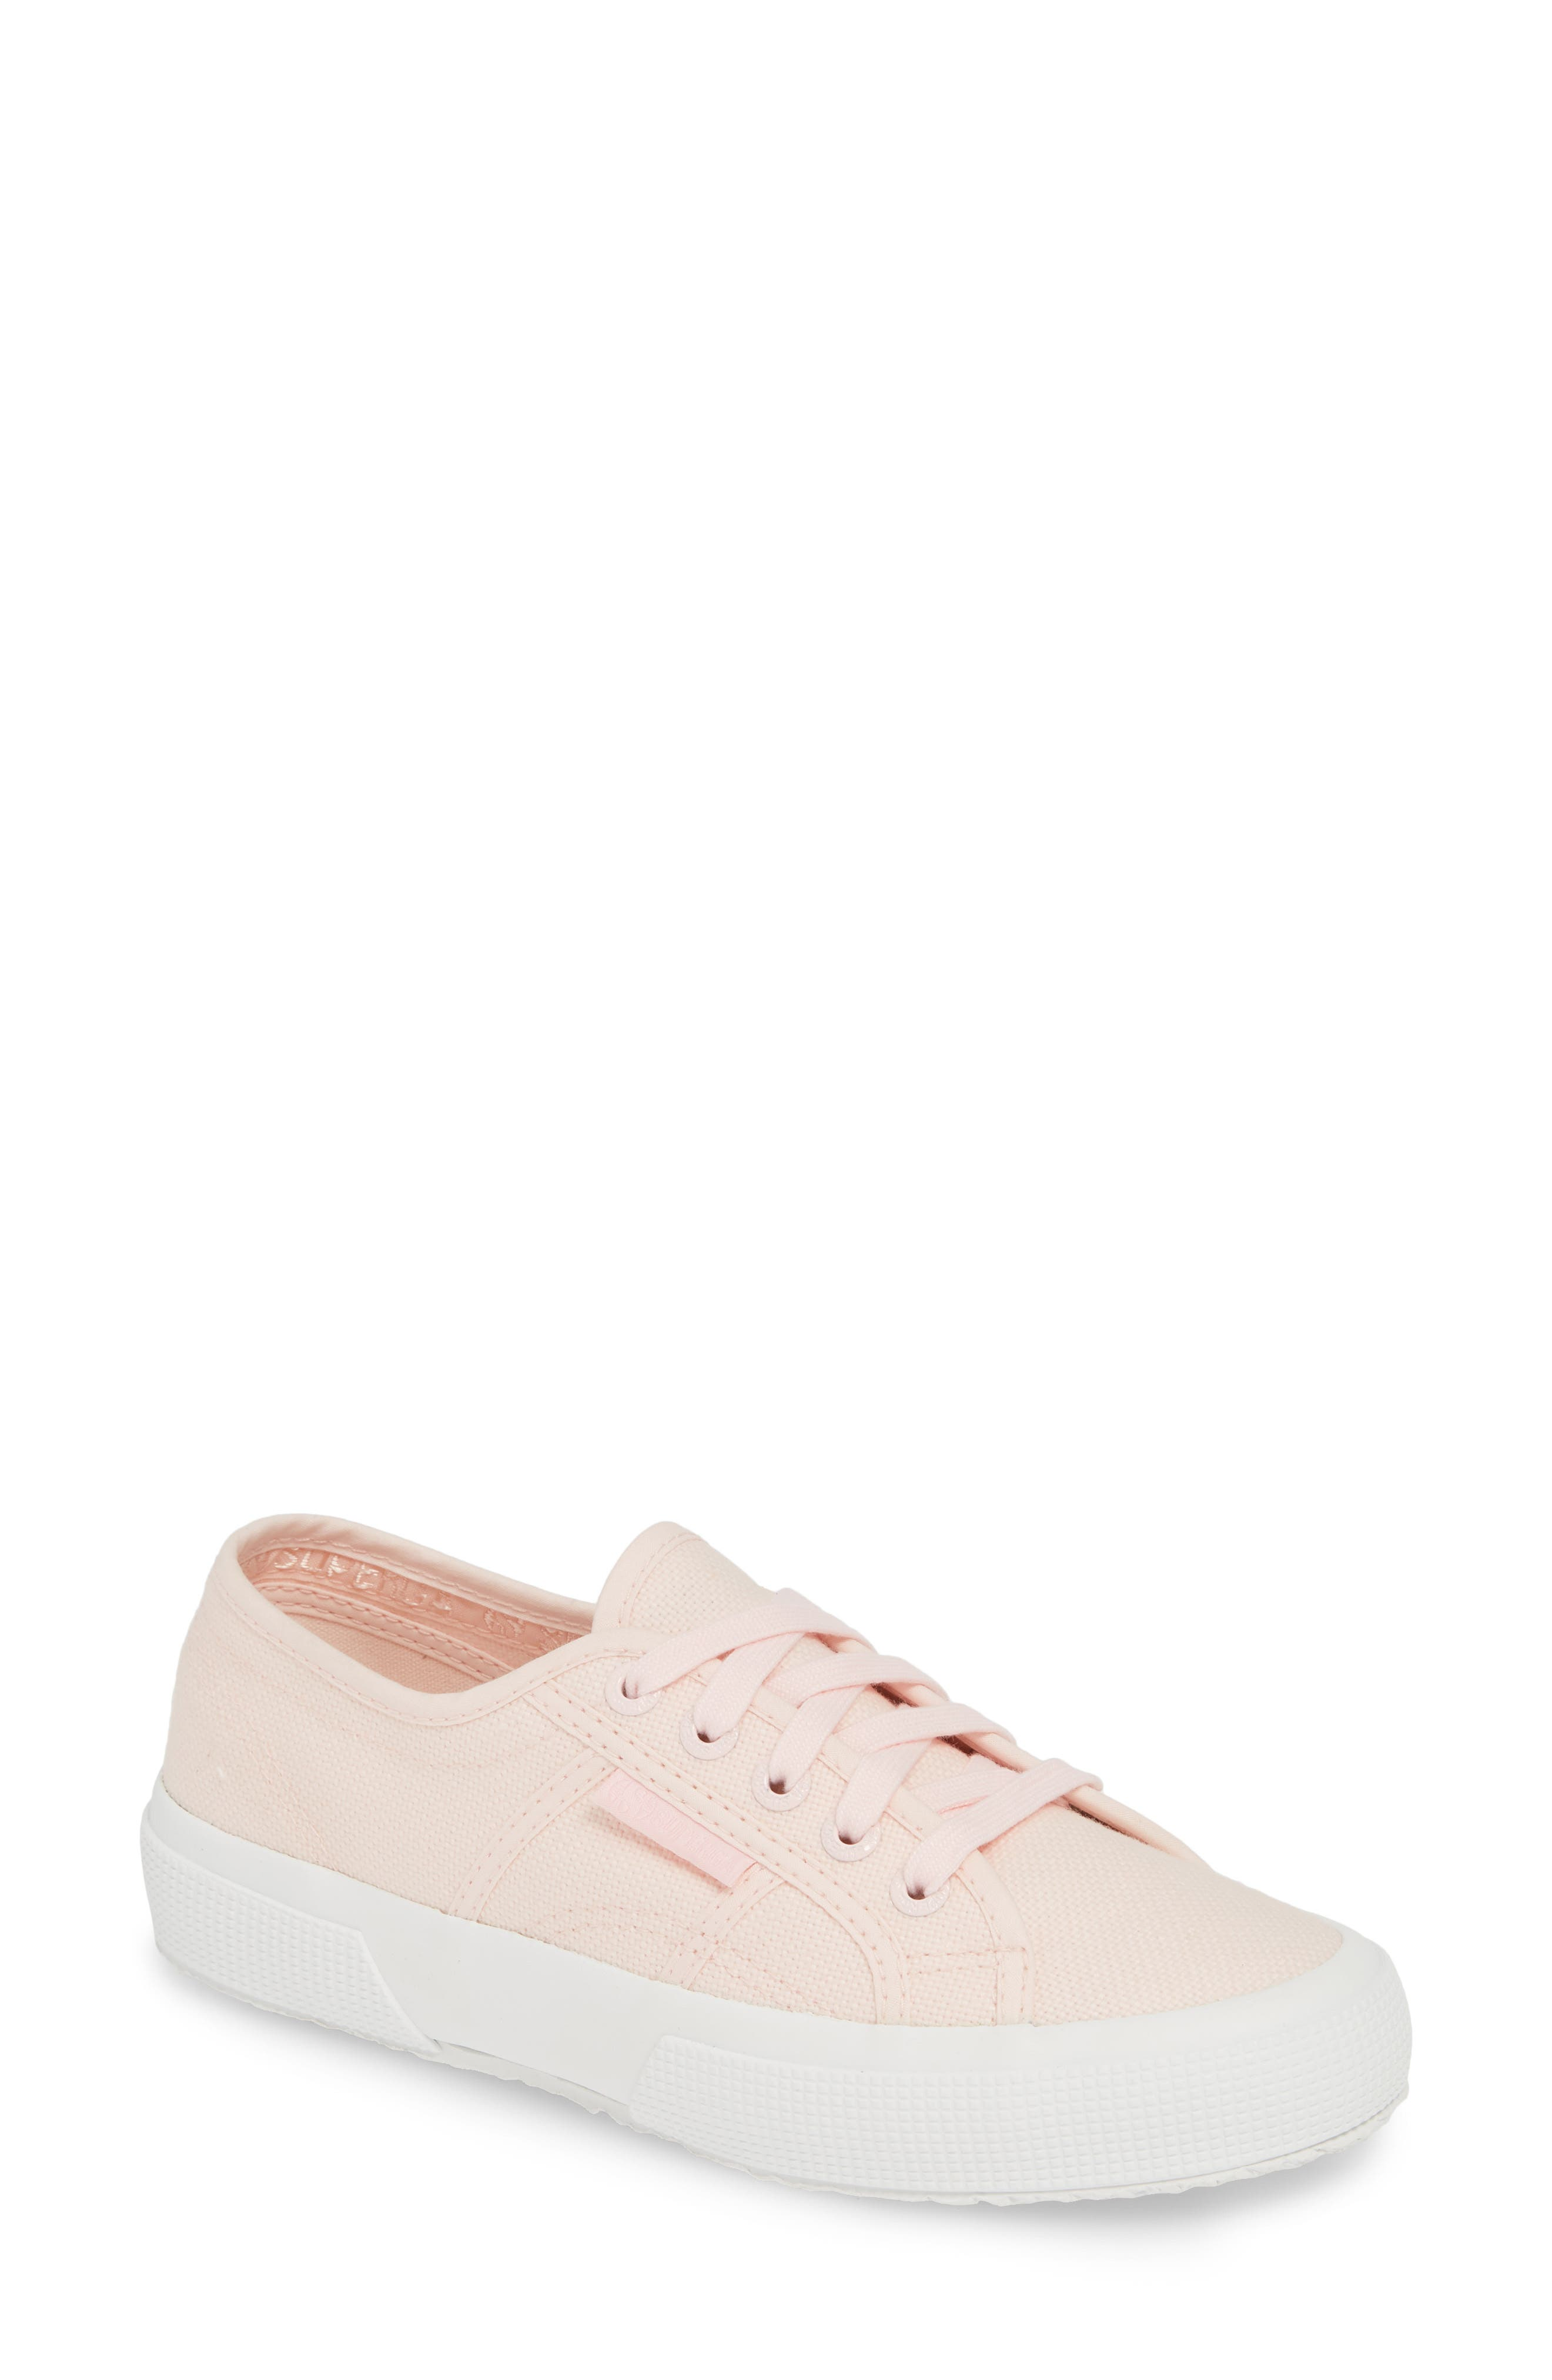 outlet store a2c08 a2a93 Women s Pink Sneakers   Running Shoes   Nordstrom